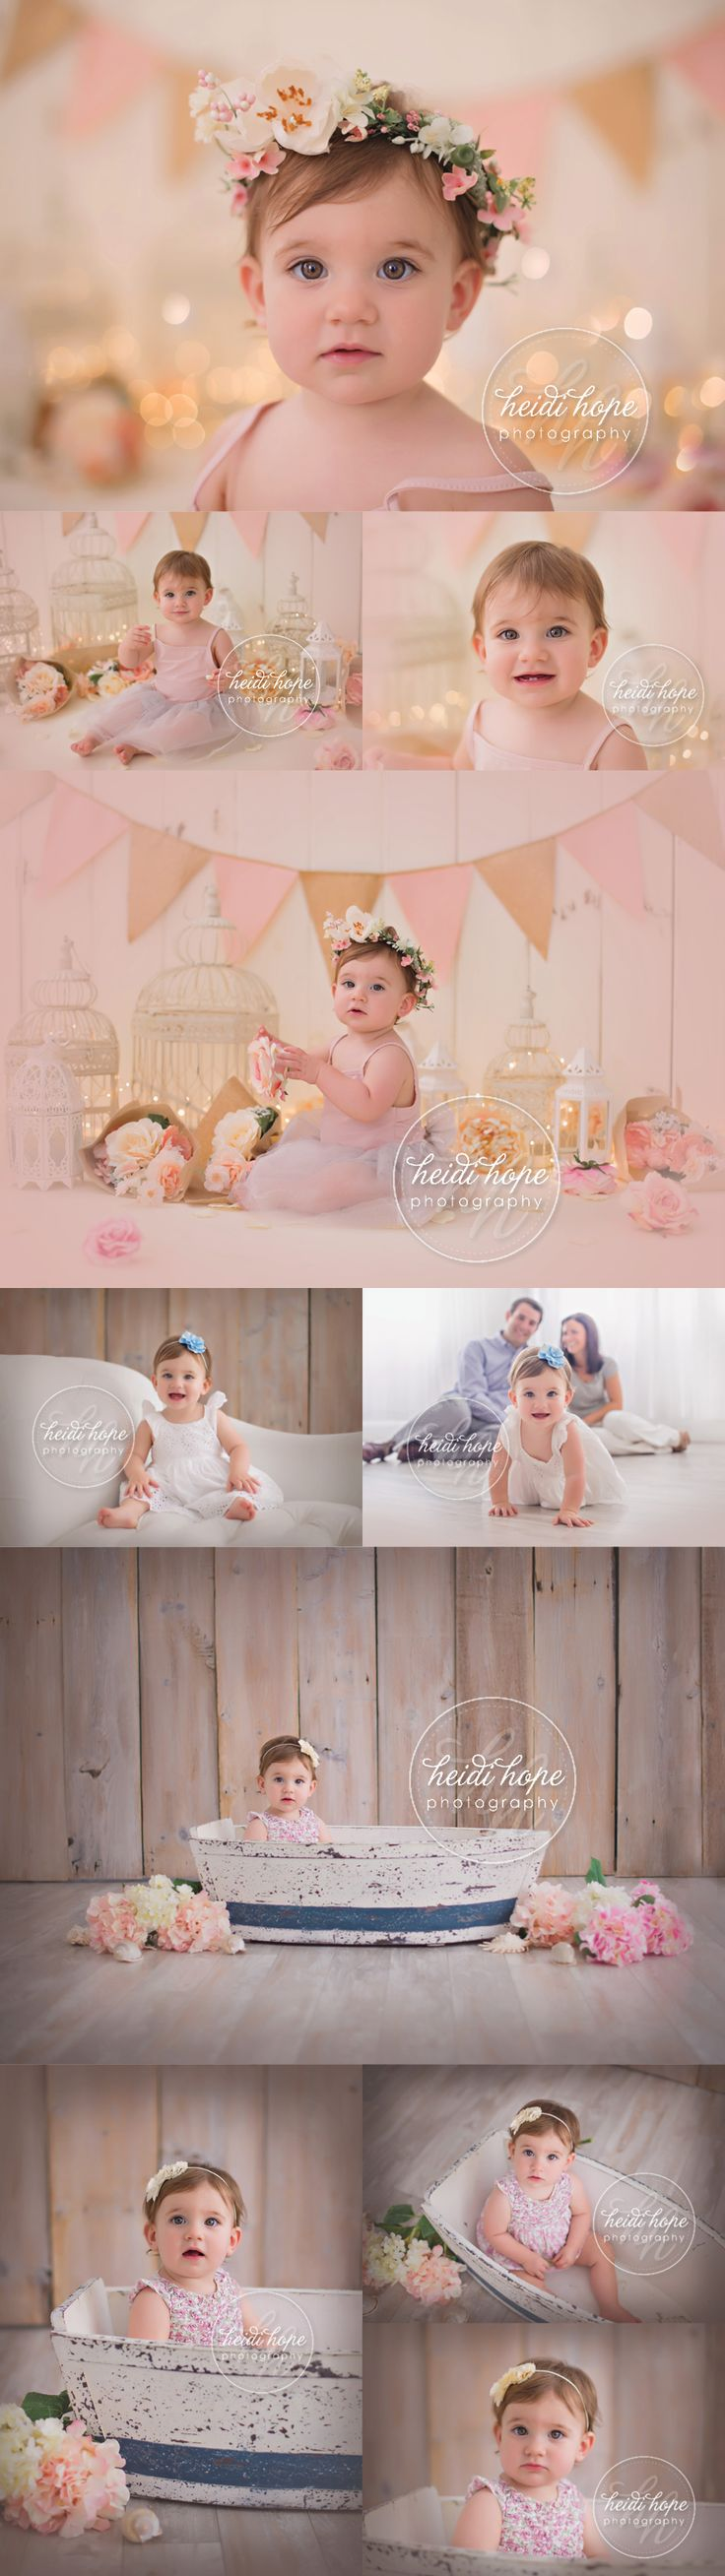 Blog | Heidi Hope Photography https://www.amazon.co.uk/Baby-Car-Mirror-Shatterproof-Installation/dp/B06XHG6SSY